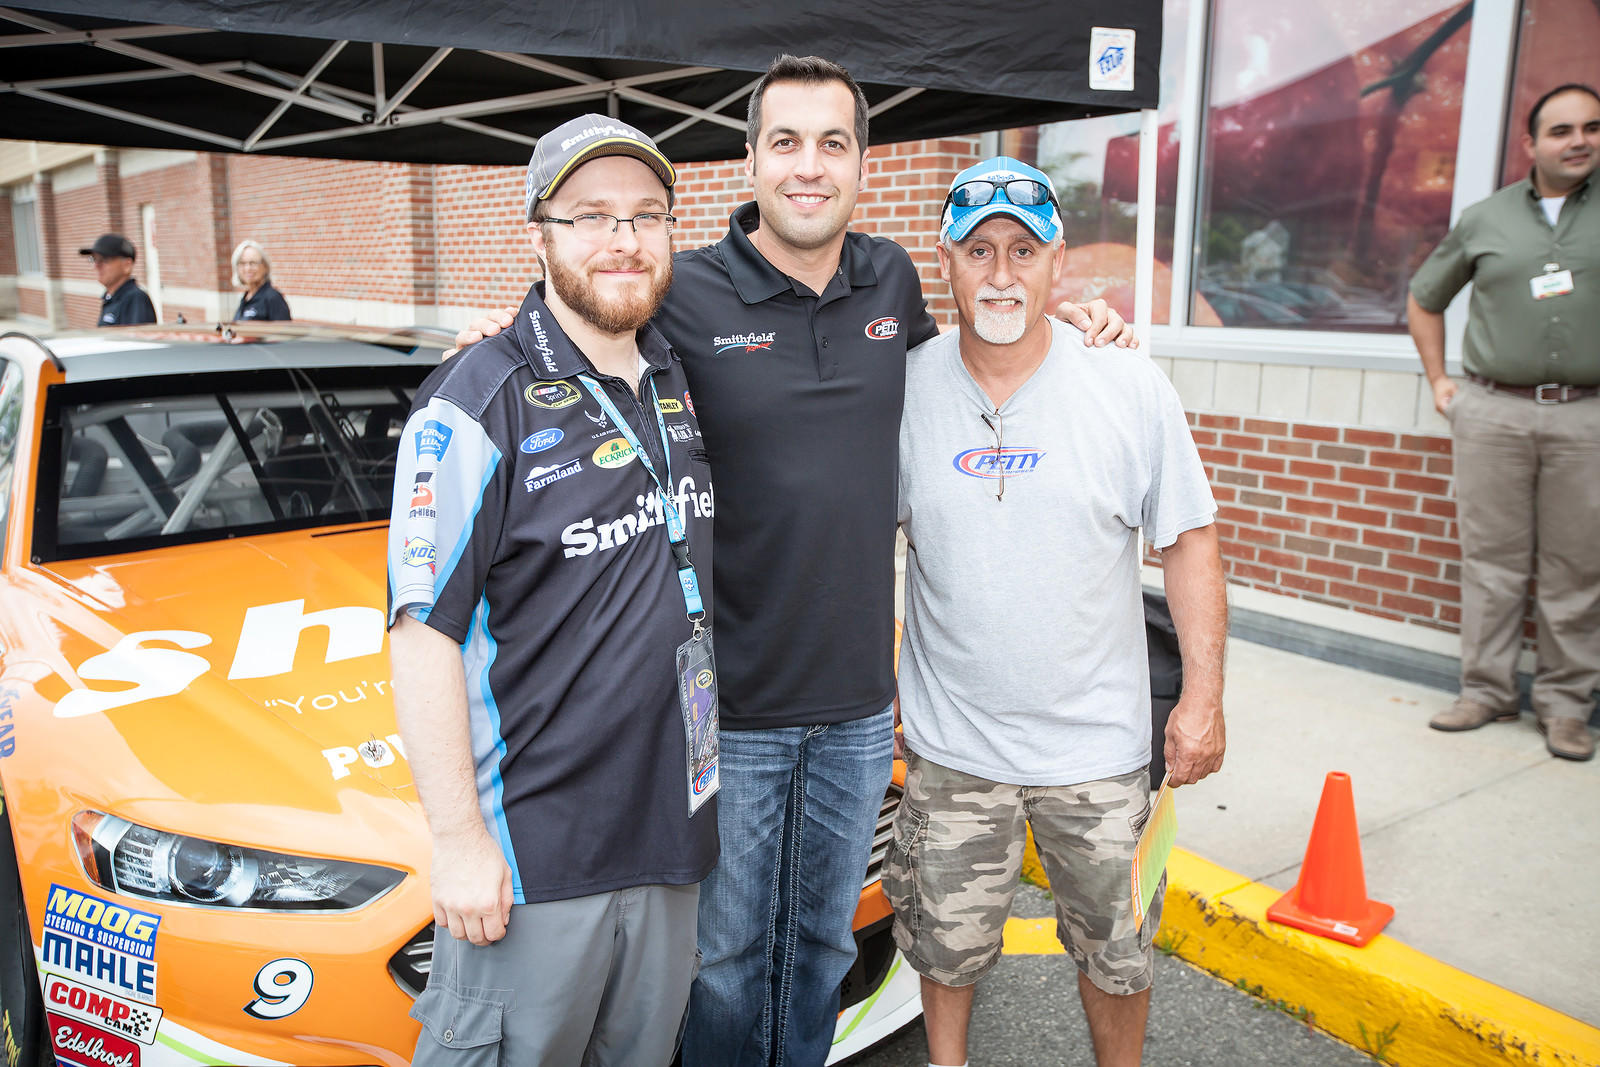 Posing with the #9 Shaw's Supermarkets Ford Fusion and NASCAR Sprint Cup Series driver Sam Hornish Jr. during an appearance event at Shaw's of Concord, New Hampshire on July 18th, 2015.